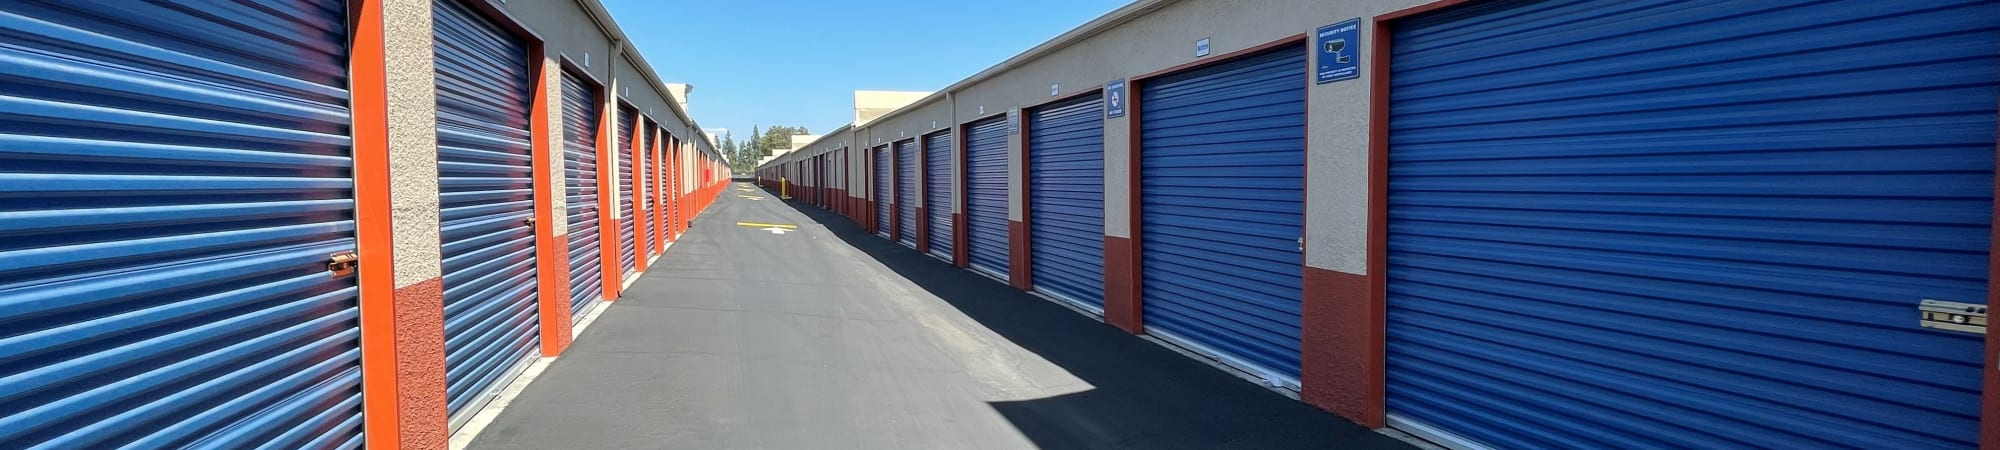 About Storage Solutions in Pomona, California